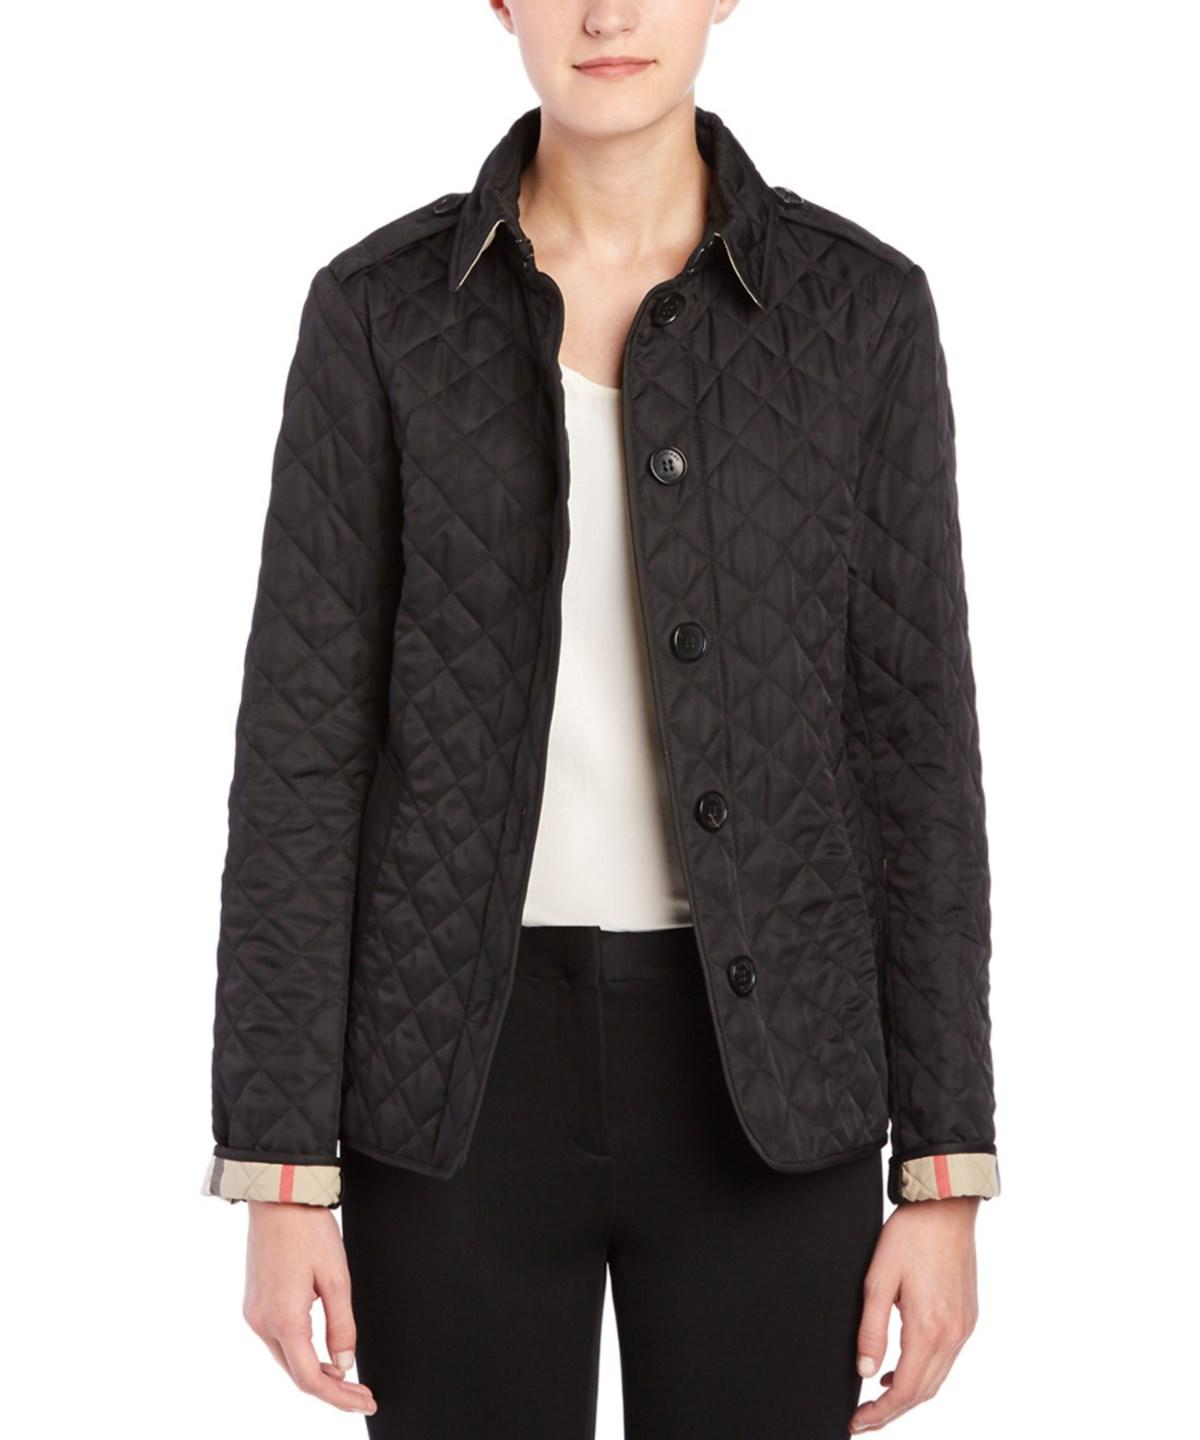 BURBERRY WOMENS  ASHURST DIAMOND QUILTED JACKET, XL, BLACK